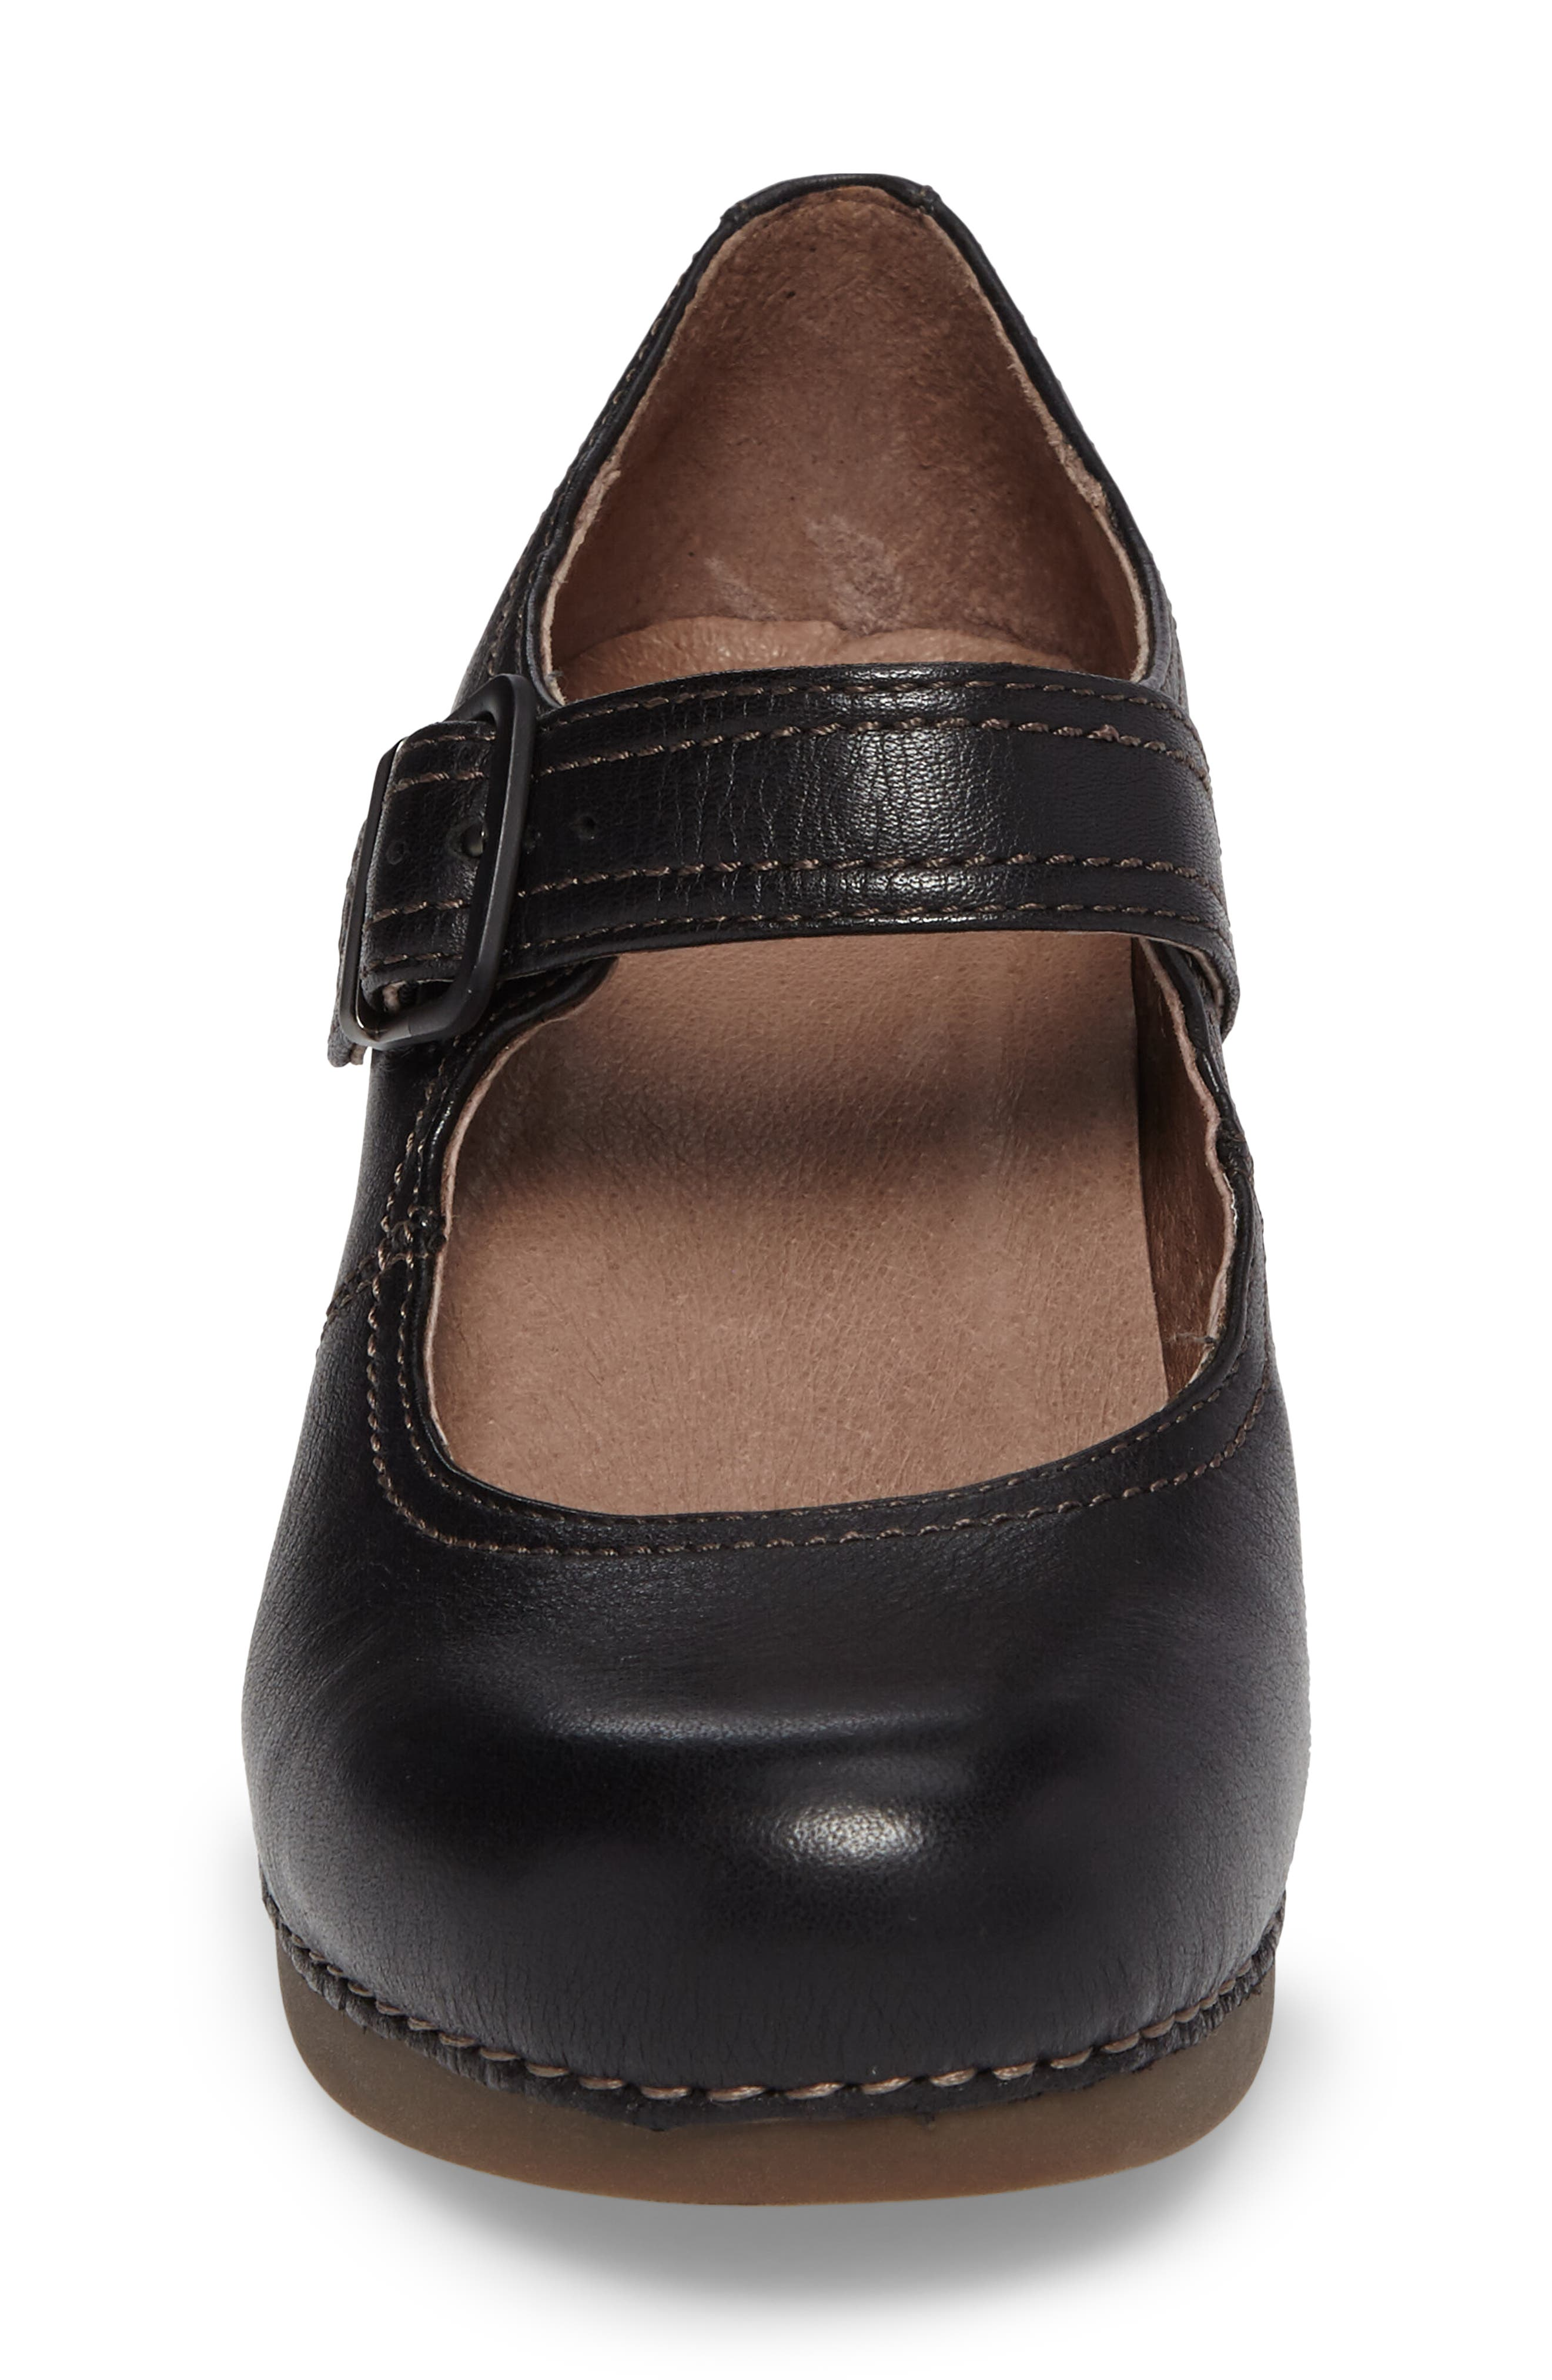 'Sandra' Mary Jane Wedge,                             Alternate thumbnail 3, color,                             Black Milled Nappa Leather